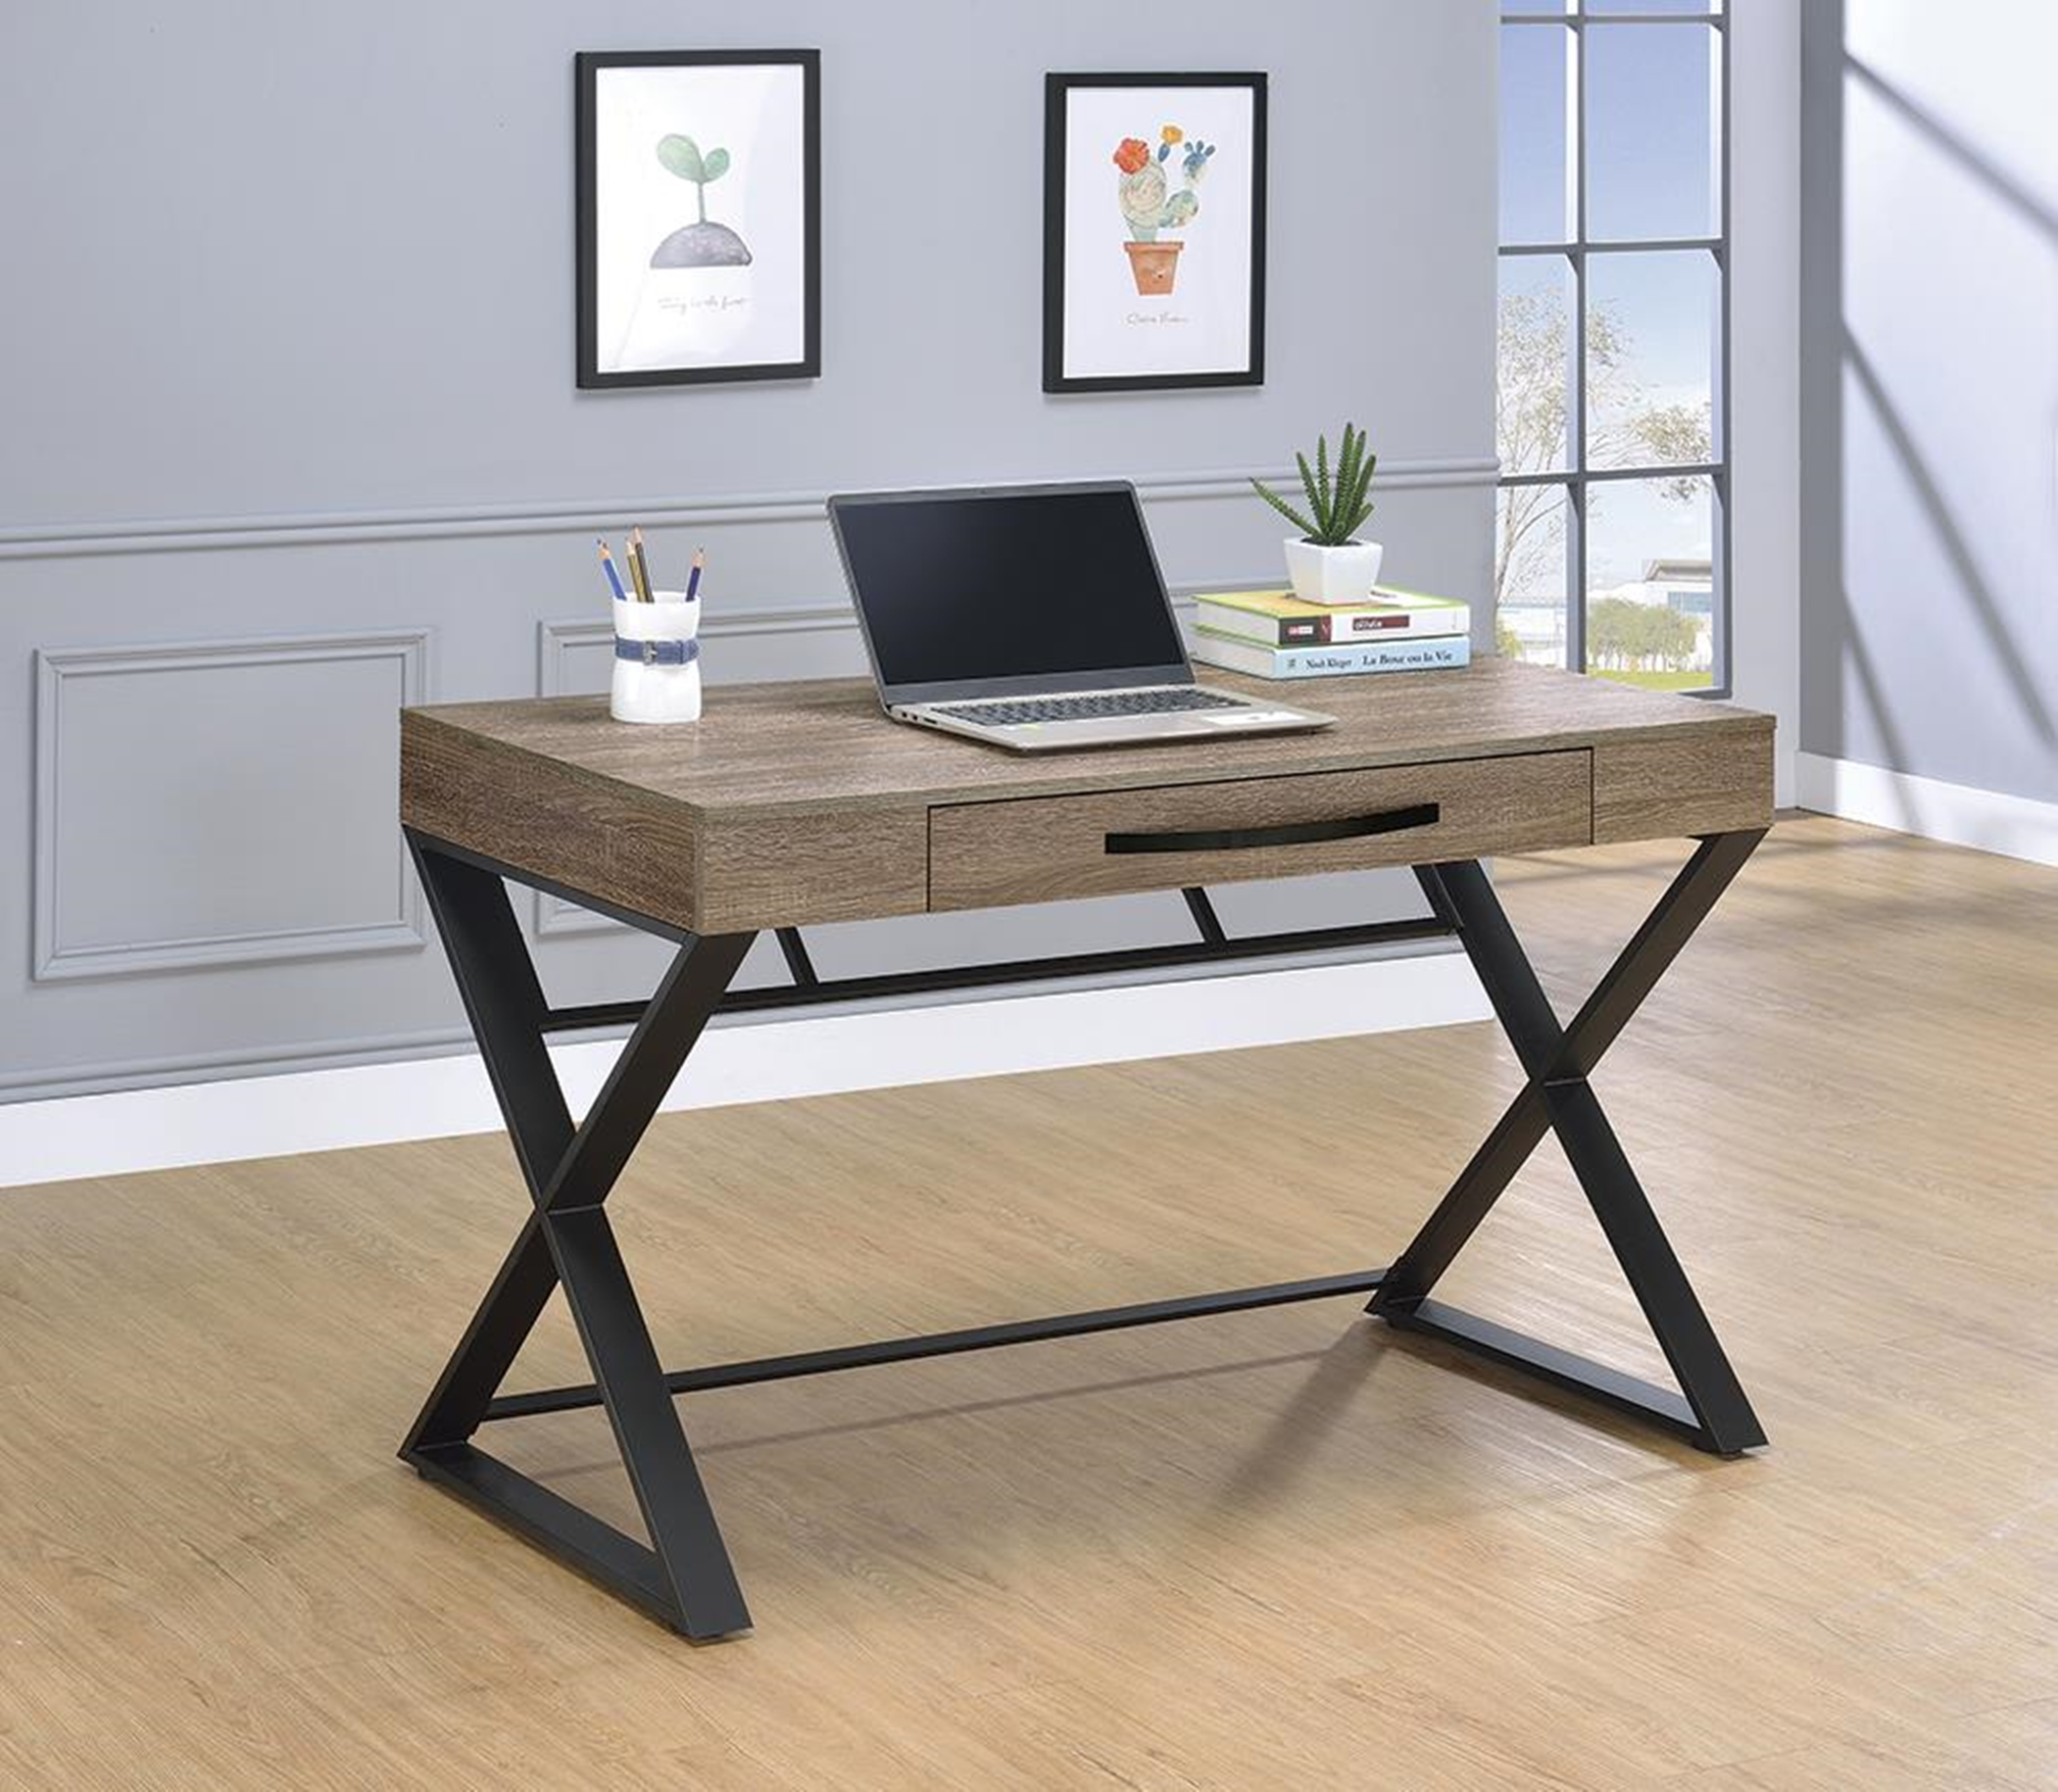 801955 - Writing Desk